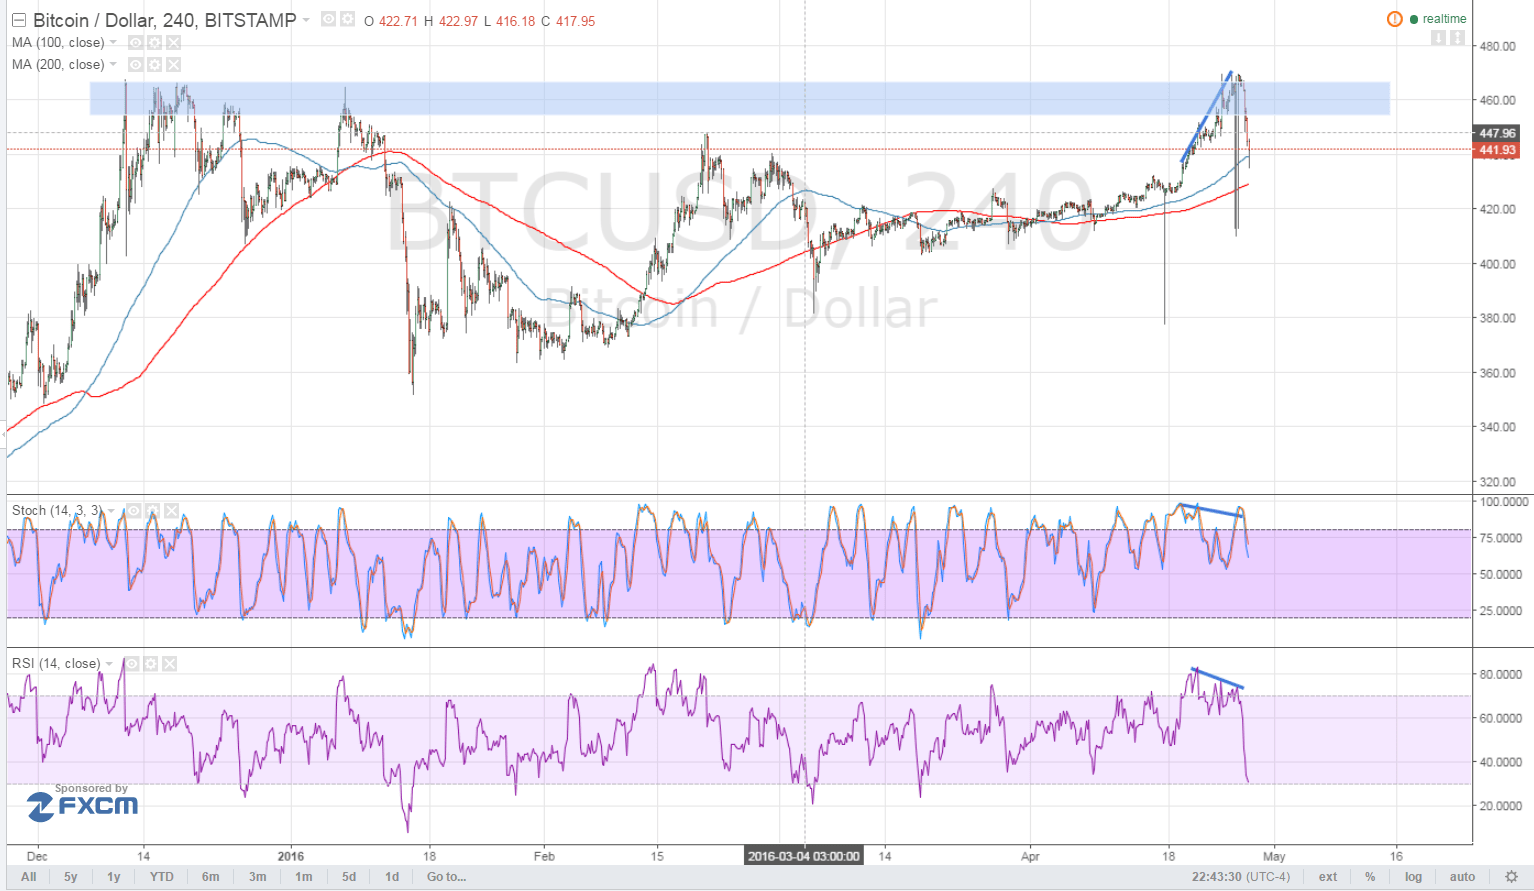 Bitcoin Price Technical Analysis for 04/28/2016 - Bears Are Back!